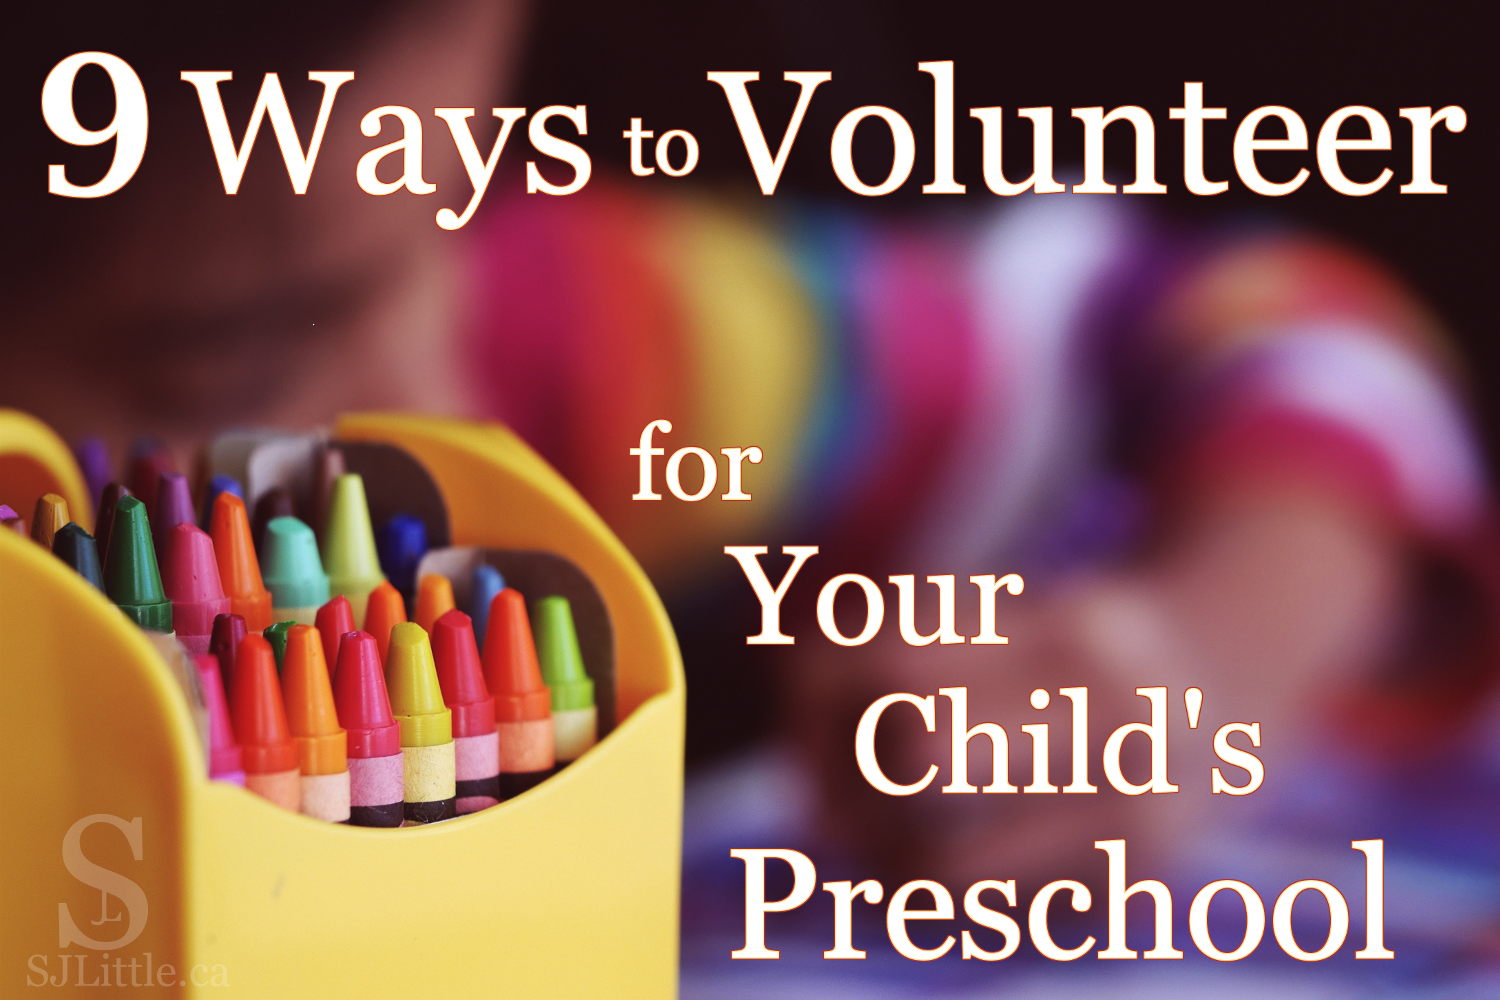 There are endless ways to help at your child's preschool. Here are 9 unique ideas to get you started.